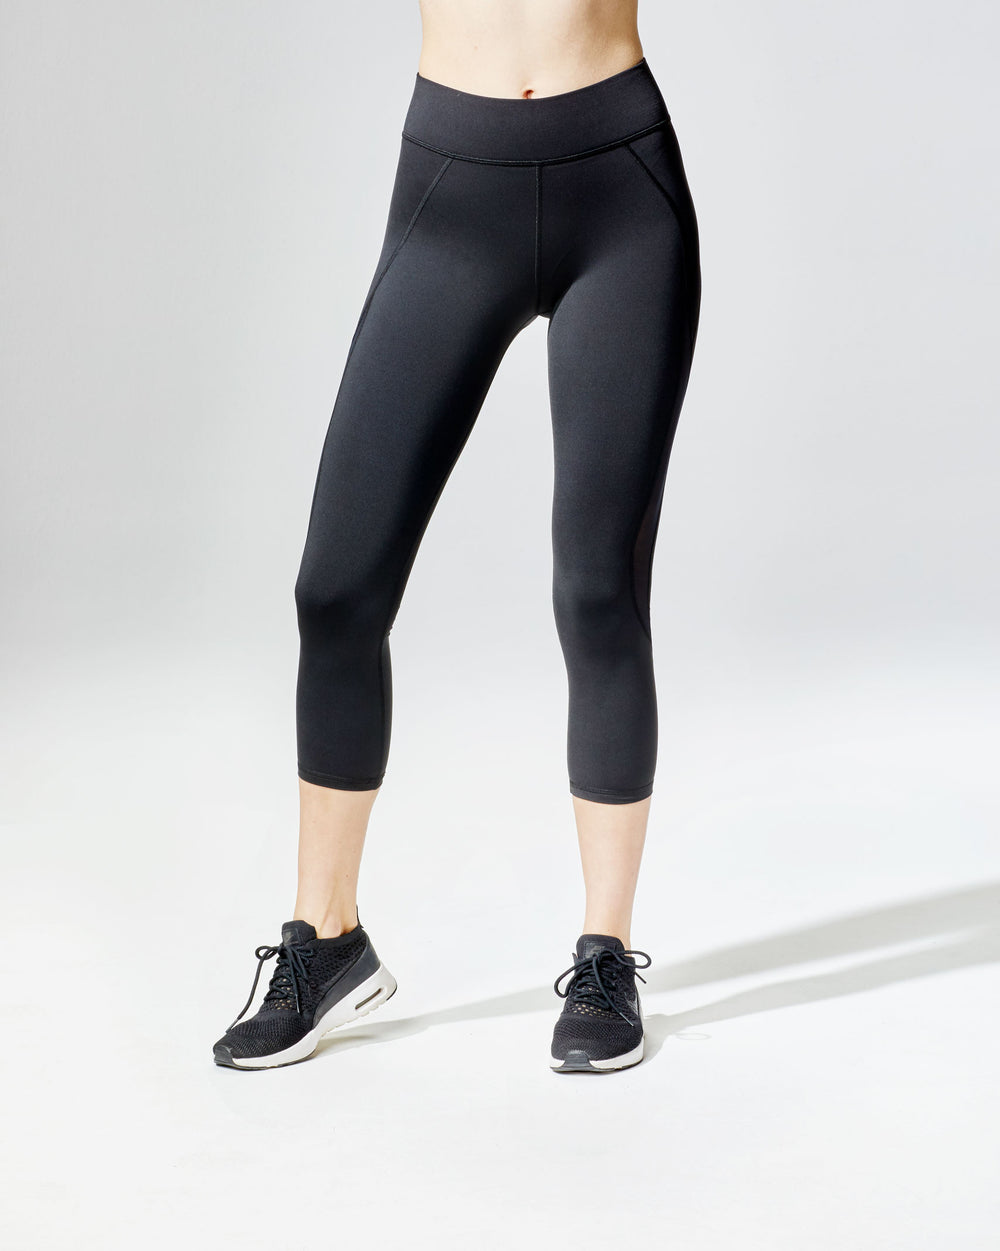 Medusa Crop Legging - Black